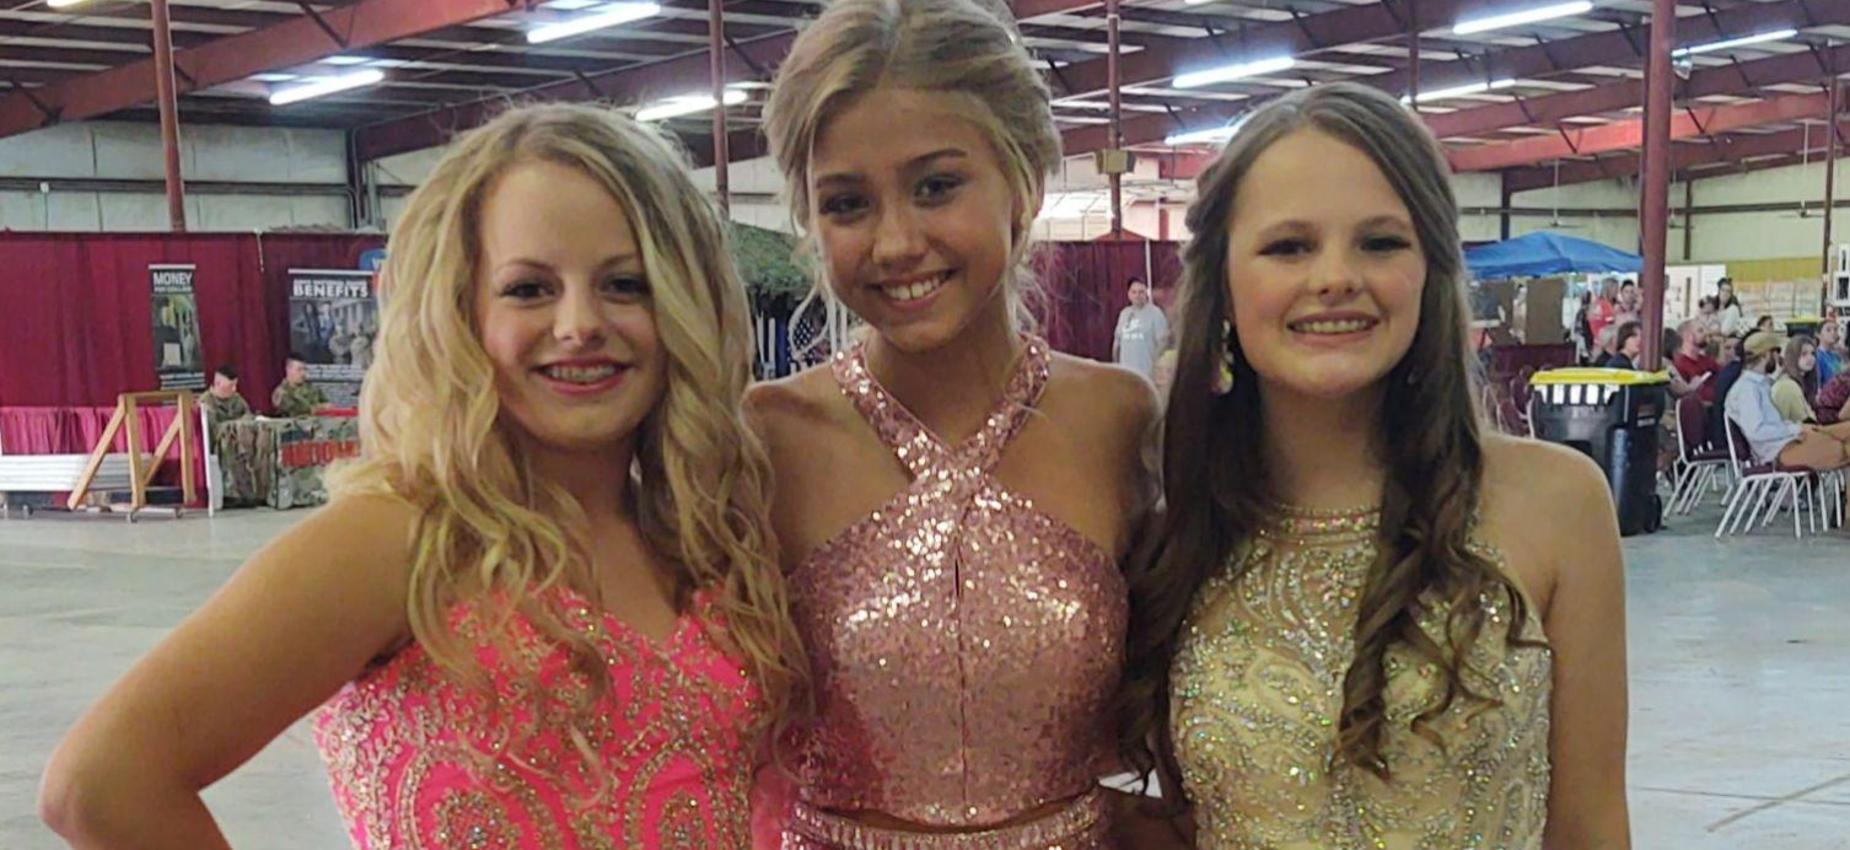 Three girls pose in pageant dresses.